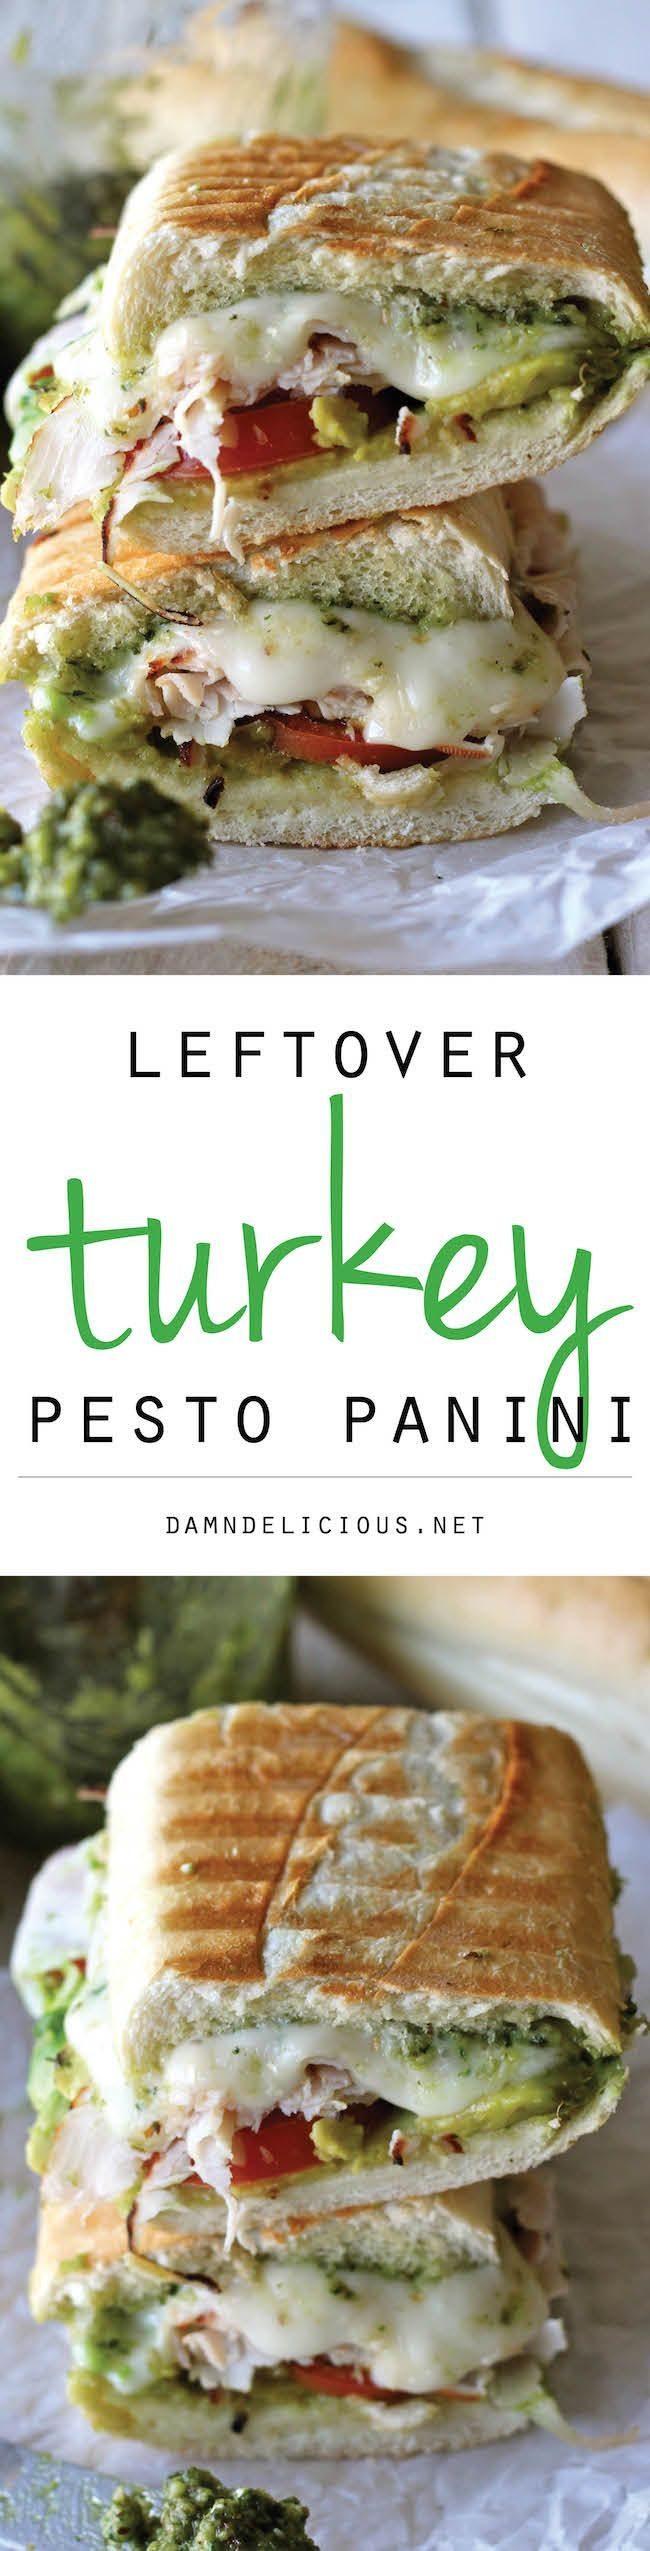 Leftover Thanksgiving Turkey Pesto Panini - This loaded panini is one of the perfect ways to use up your leftover Thanksgiving turkey!